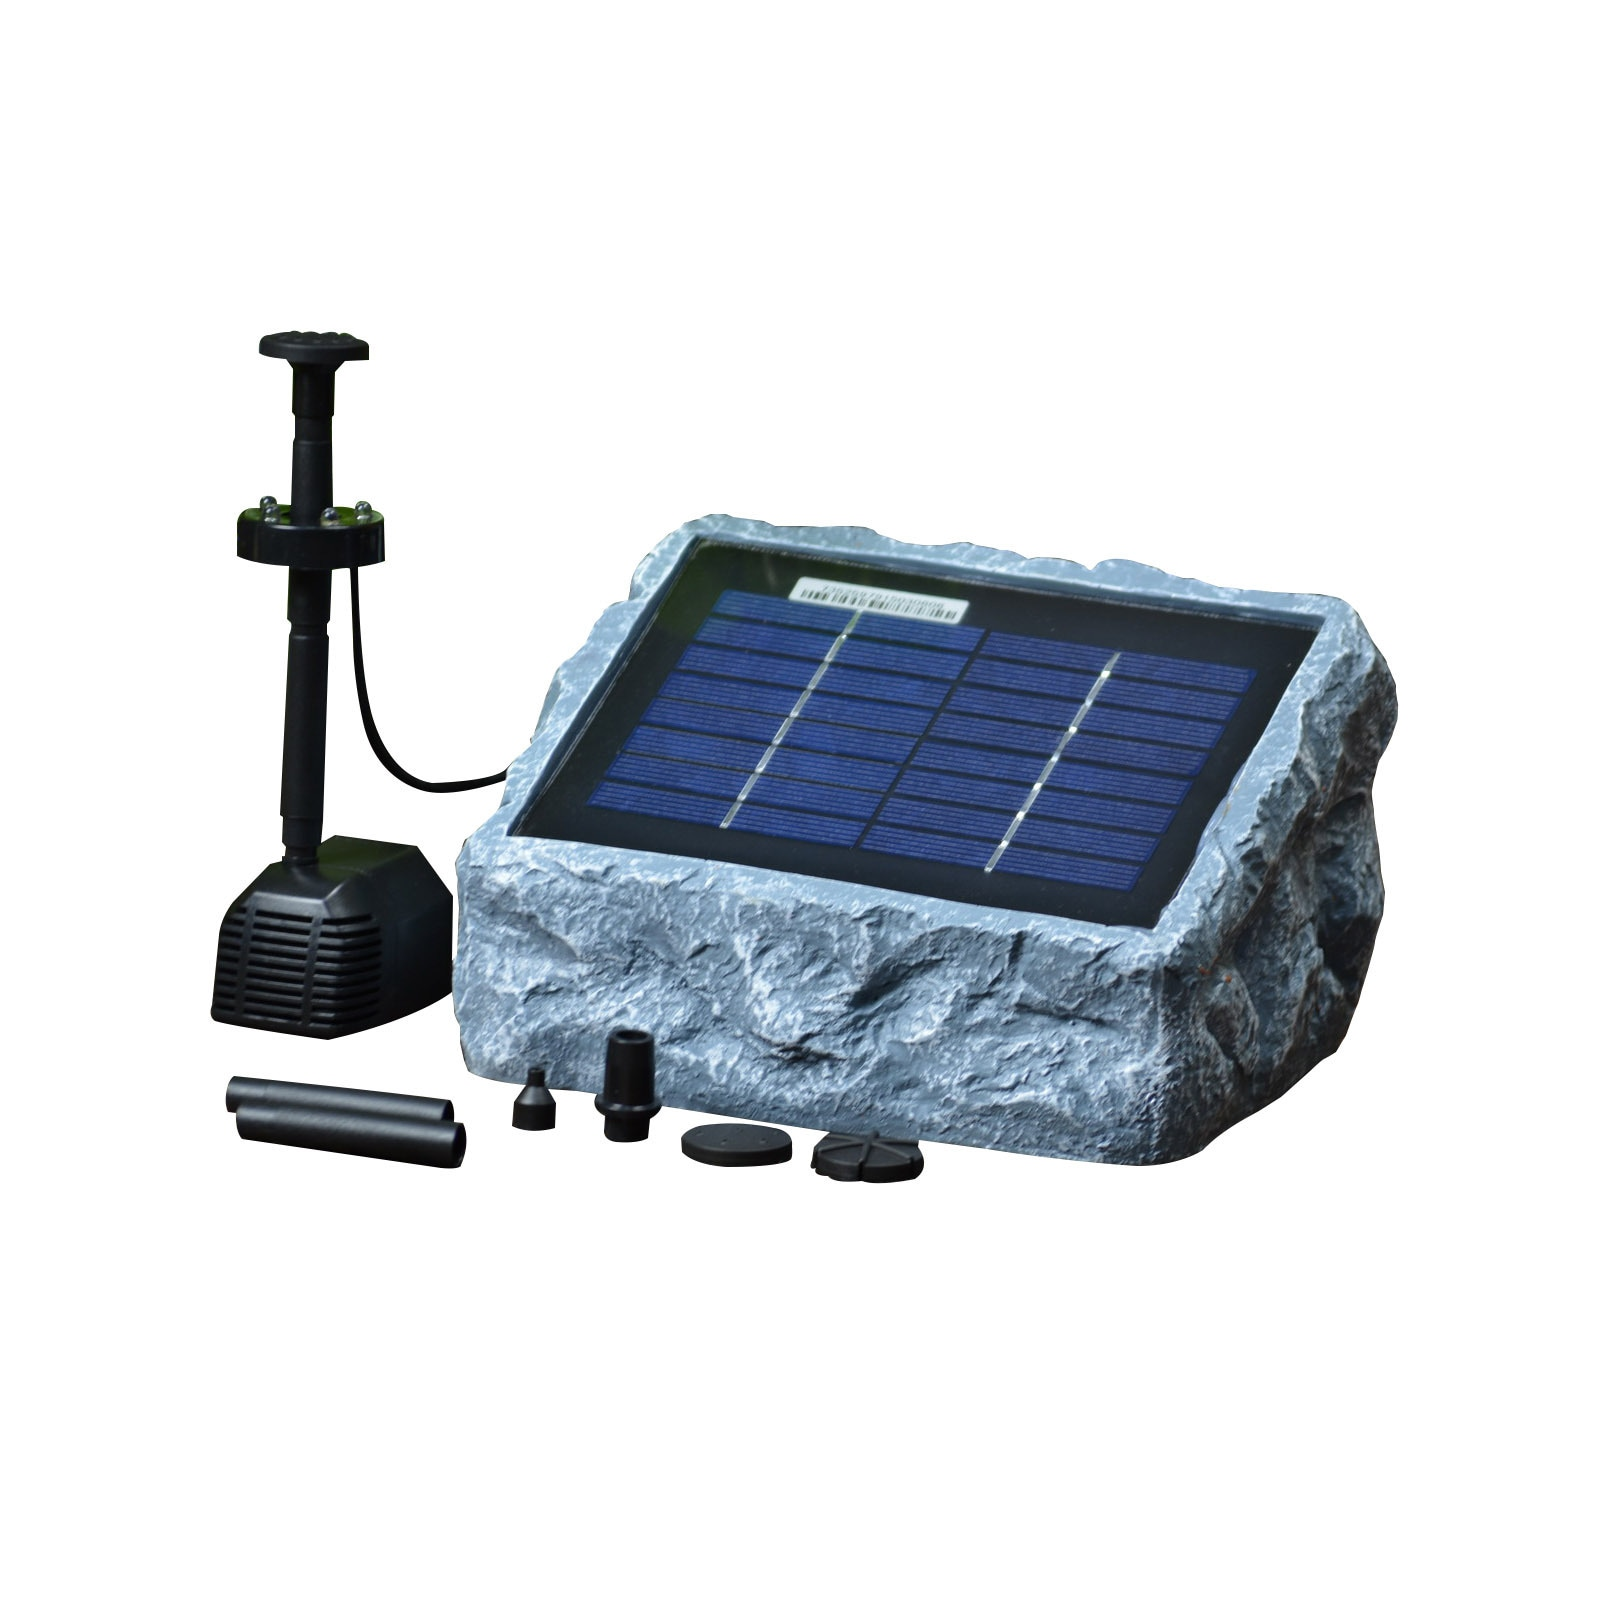 Lucent Solar Stone Water Pump Two (2) Watt with LED Light...